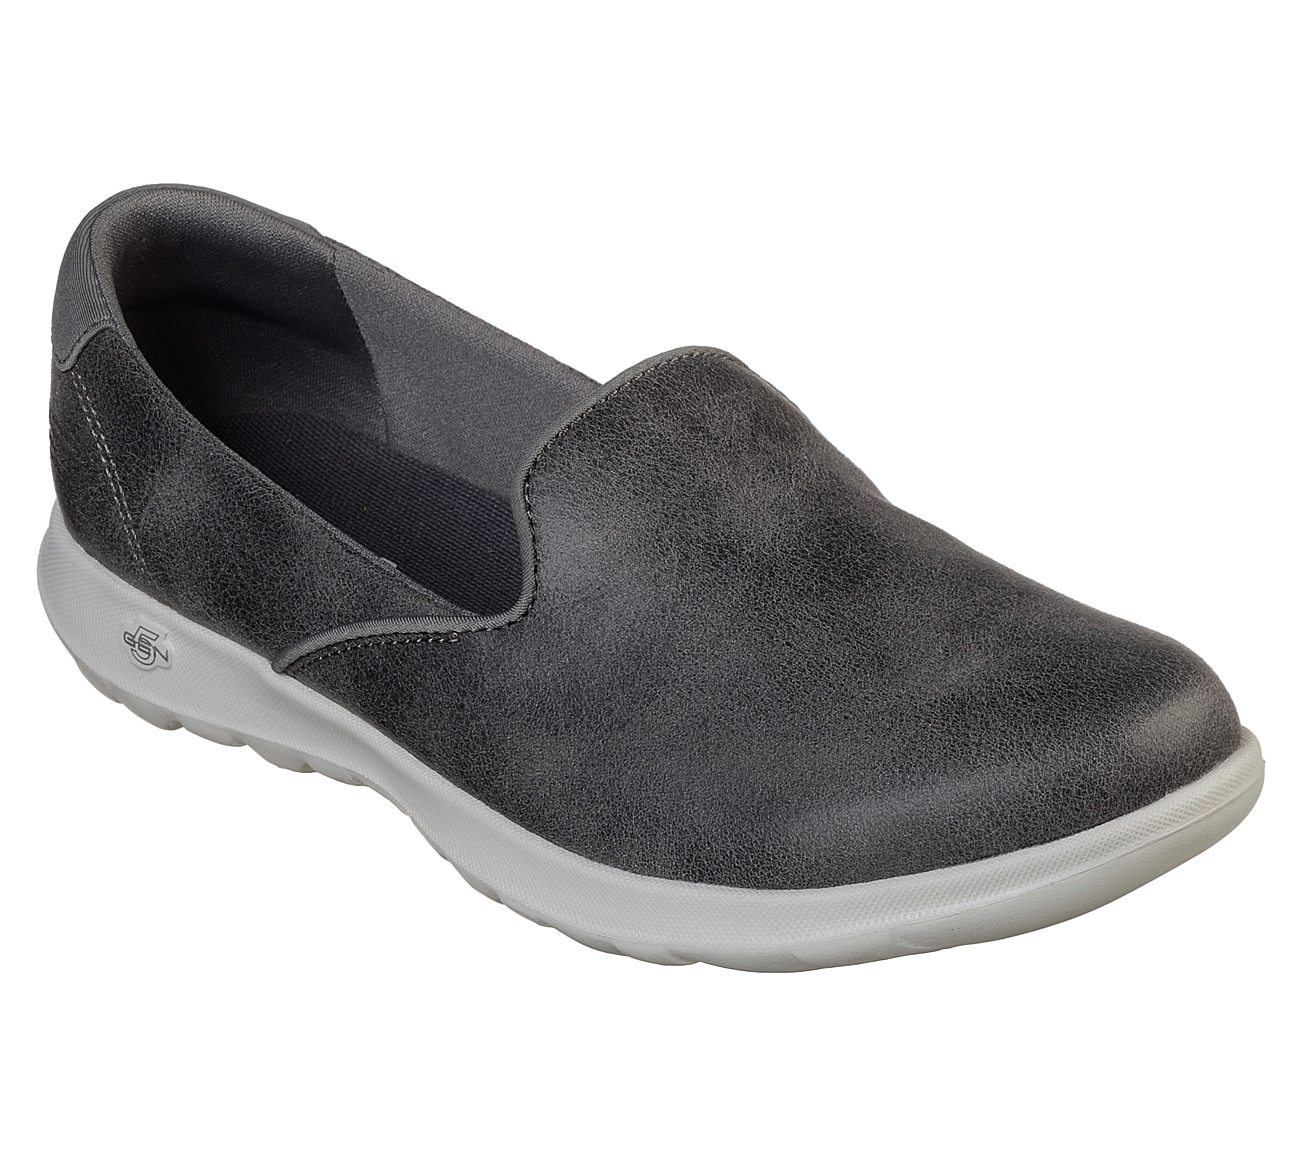 NEW SKECHERS WOMENS GOWALK LITE QUEENLY SLIP-ON WALKING SHOE